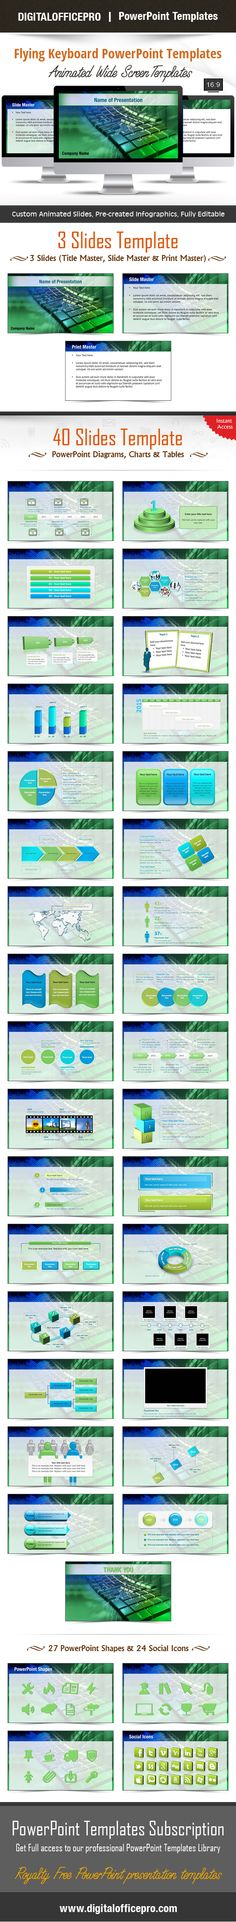 Impress and Engage your audience with Flying Keyboard PowerPoint Template and Flying Keyboard PowerPoint Backgrounds from DigitalOfficePro. Each template comes with a set of PowerPoint Diagrams, Charts & Shapes and are available for instant download.